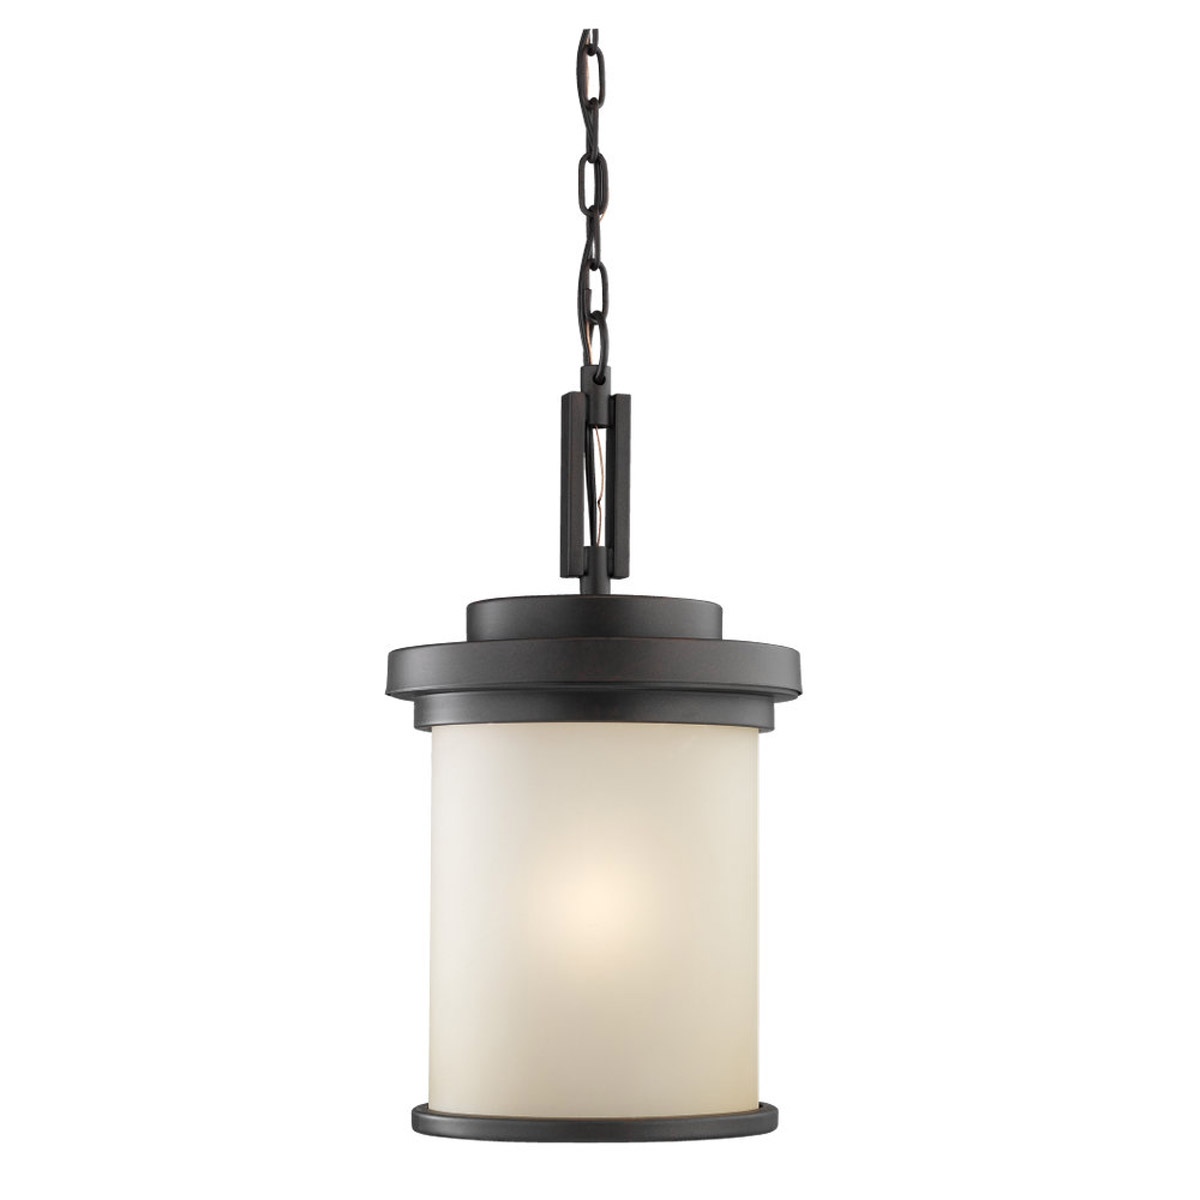 Sea Gull Lighting Winnetka 1 Light Outdoor Pendant in Misted Bronze 60660-814 photo